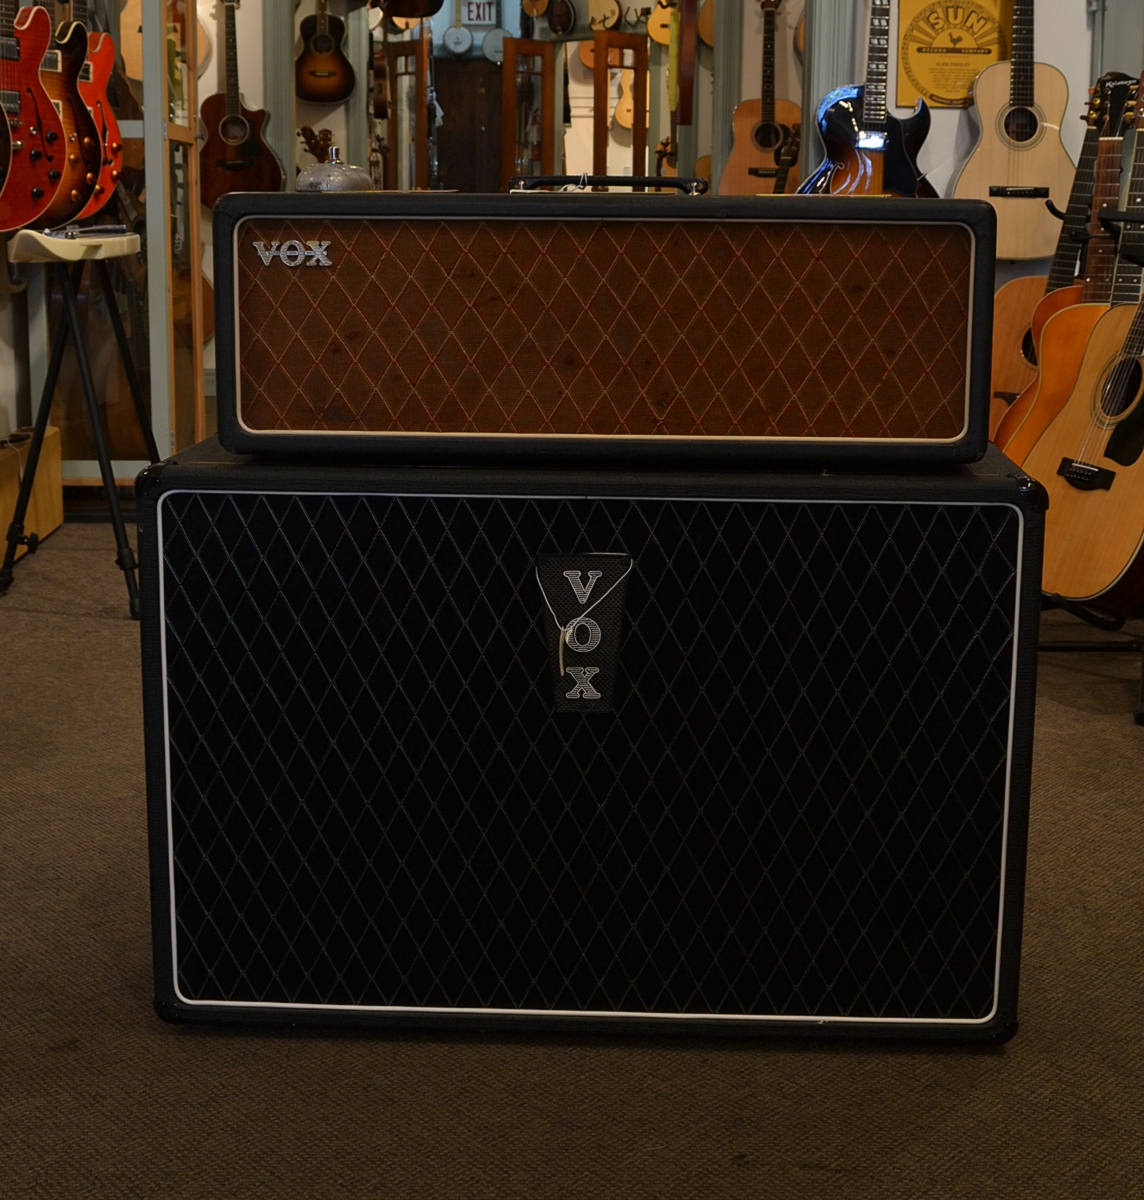 vox ac 30 head 1963 consignment sold. Black Bedroom Furniture Sets. Home Design Ideas